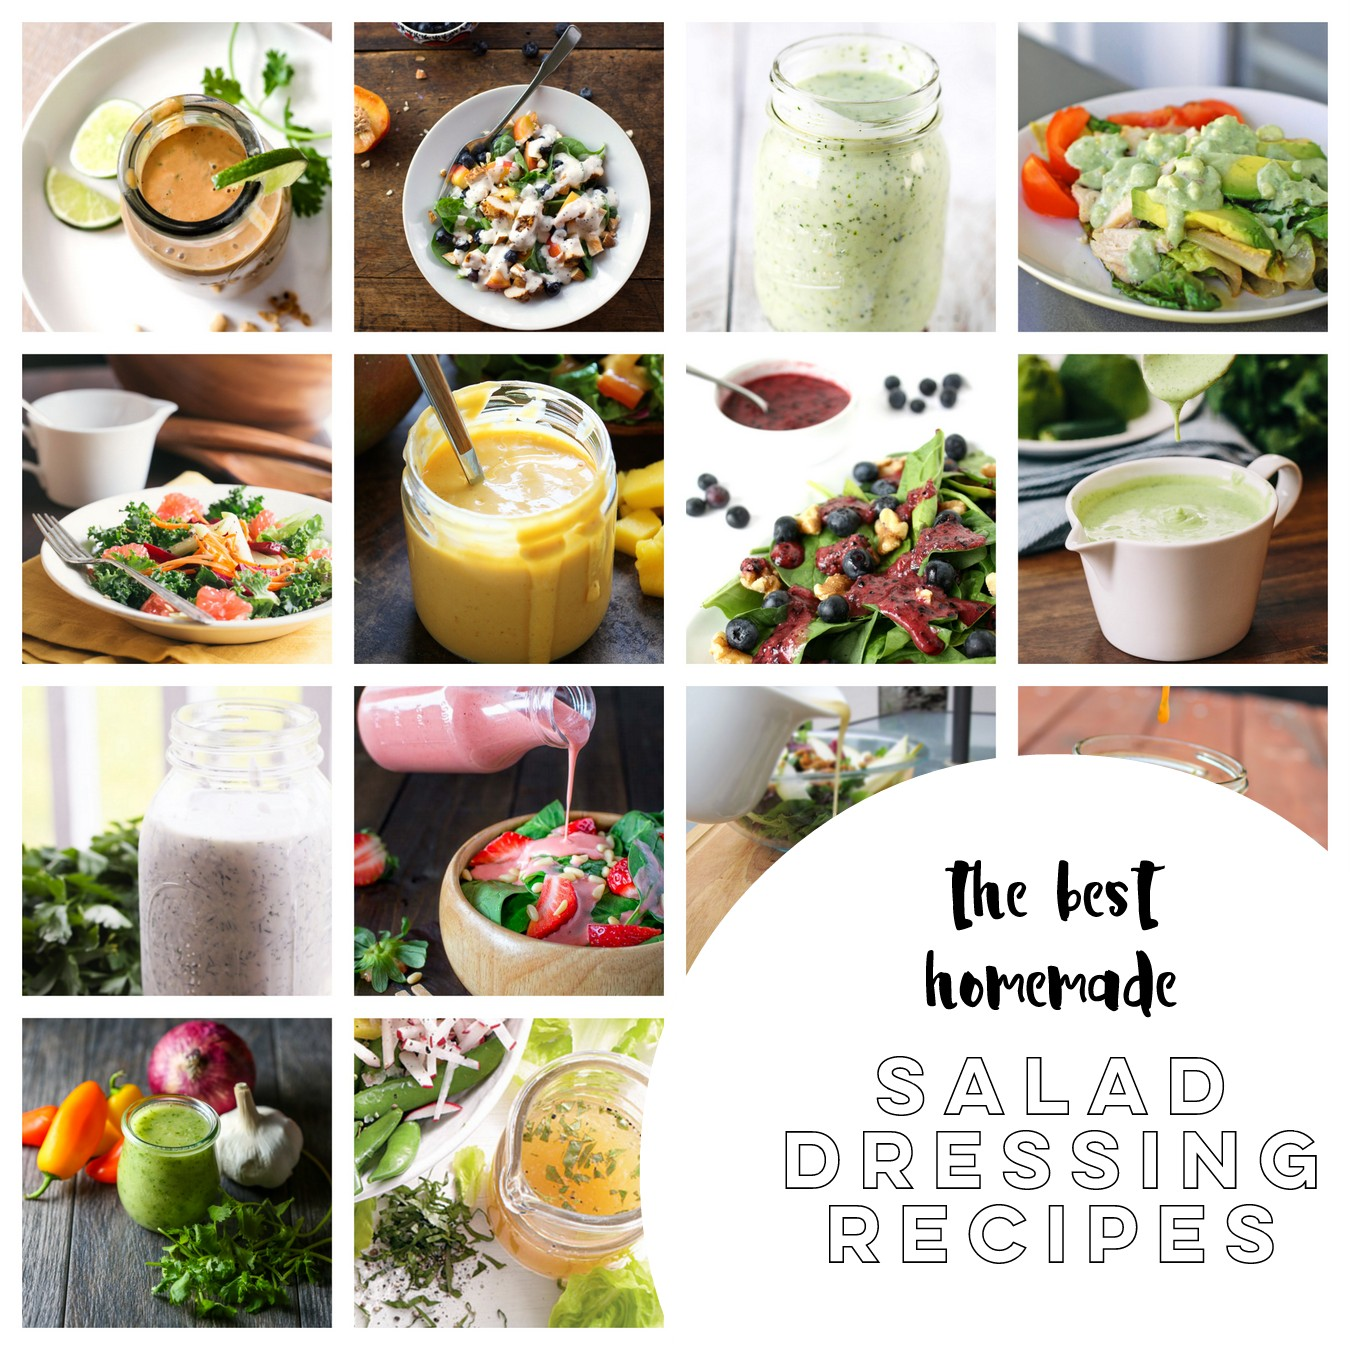 must-try homemade salad dressing recipes